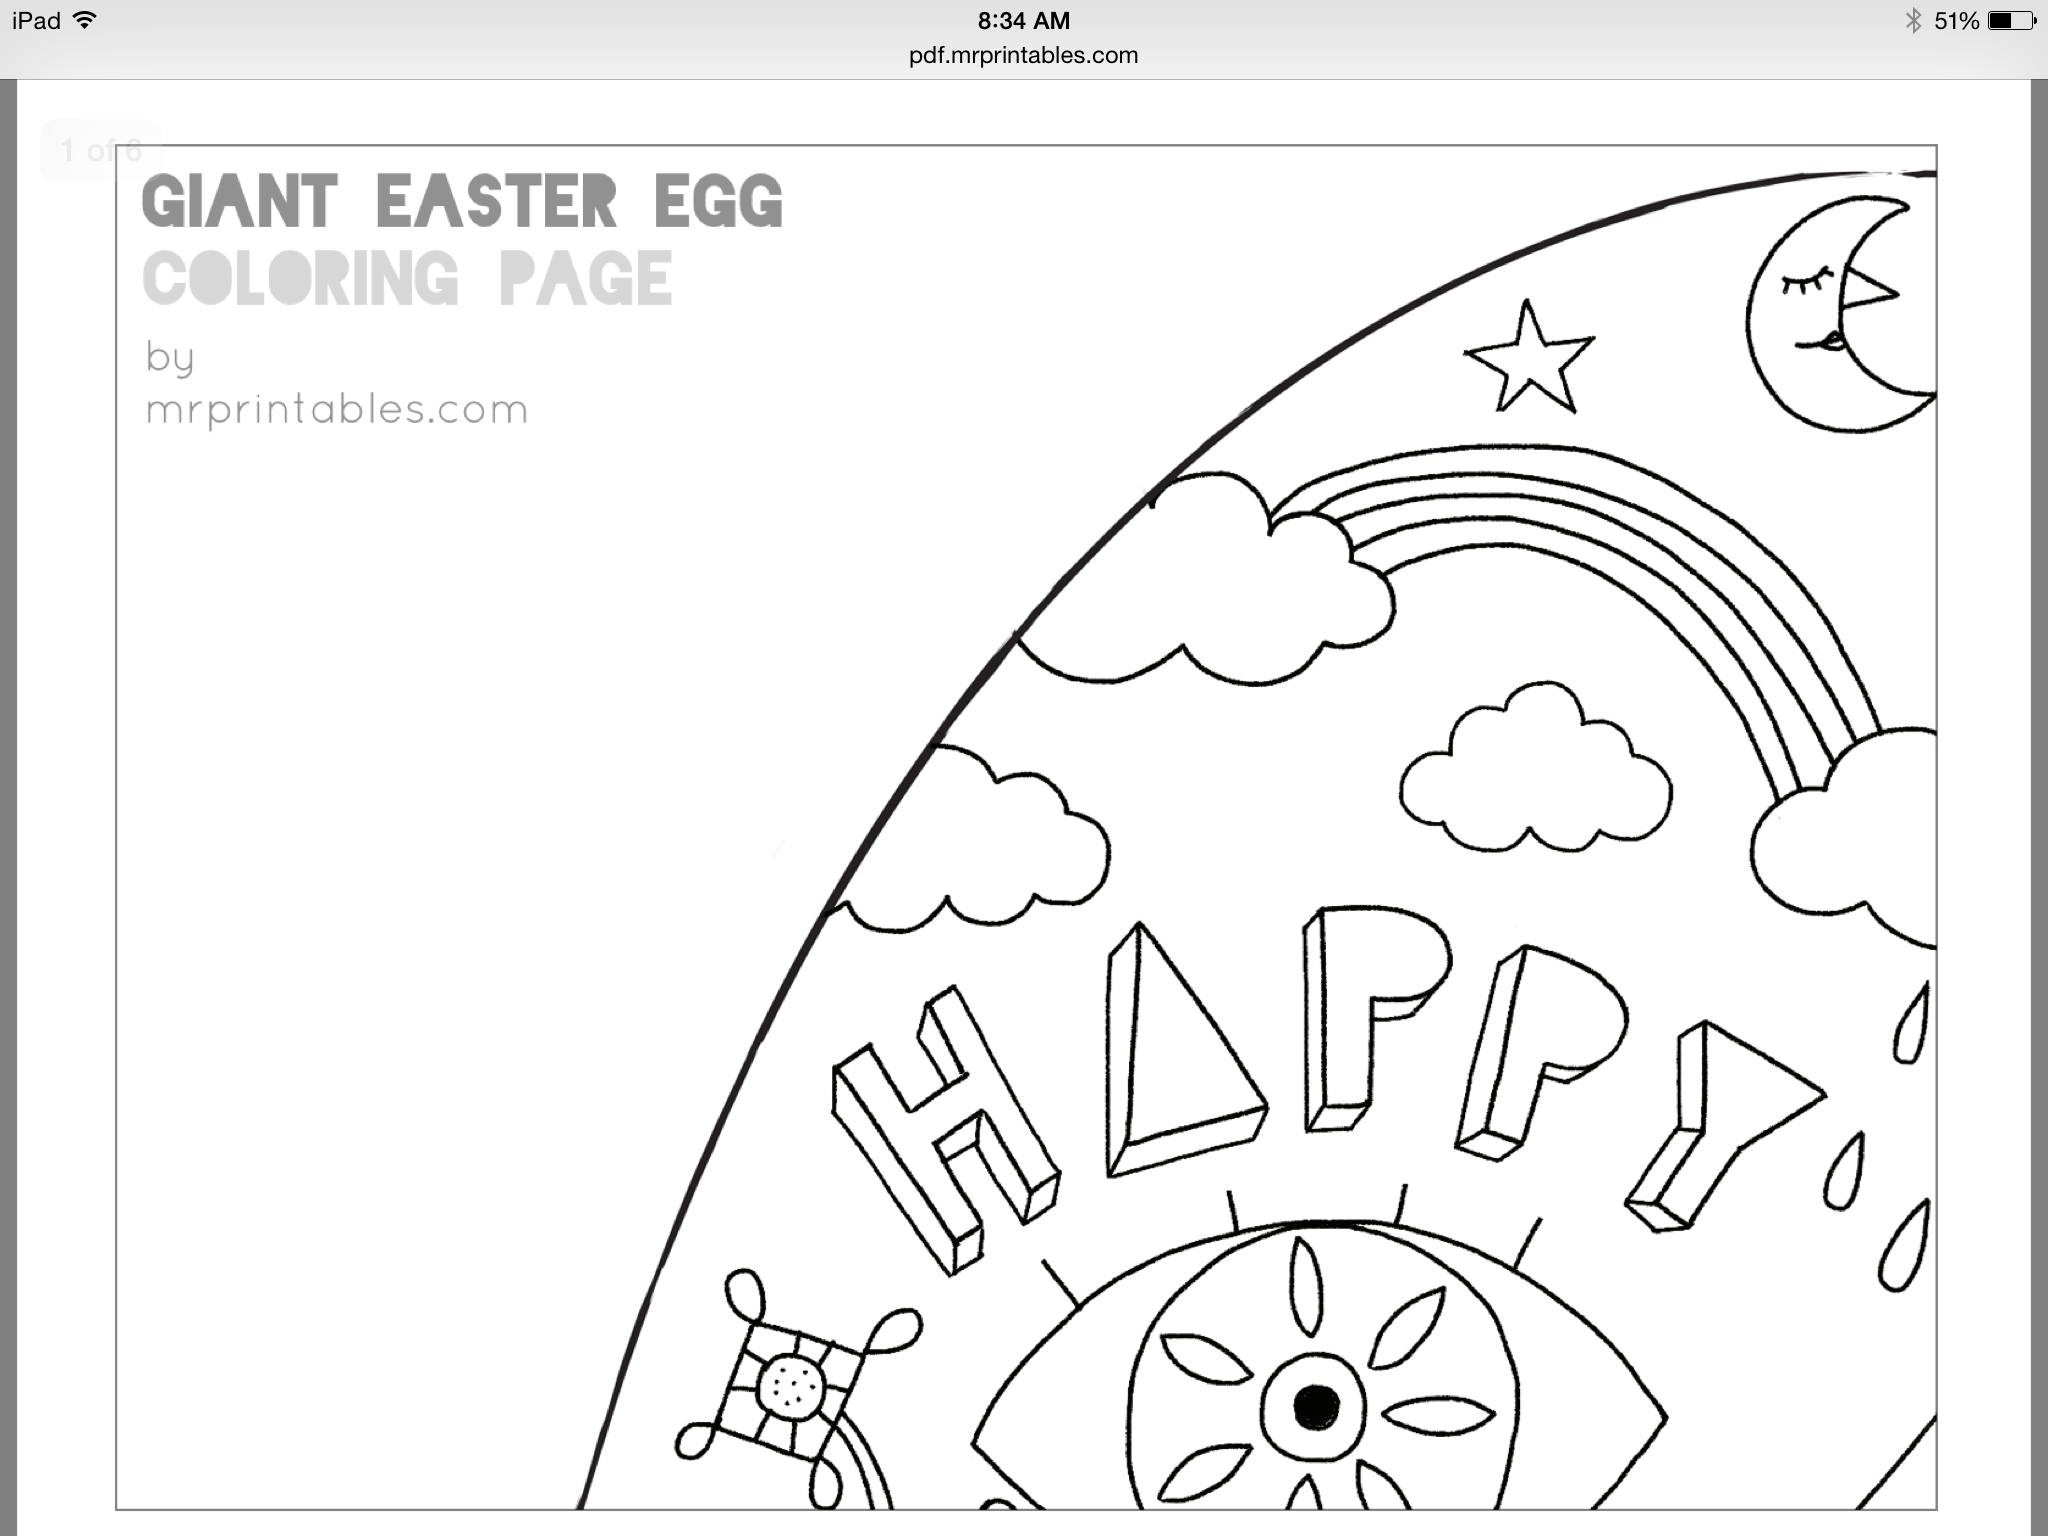 Pin By Samantha Little On Curriculum Coloring Pages Coloring Easter Eggs Easter Egg Coloring Pages